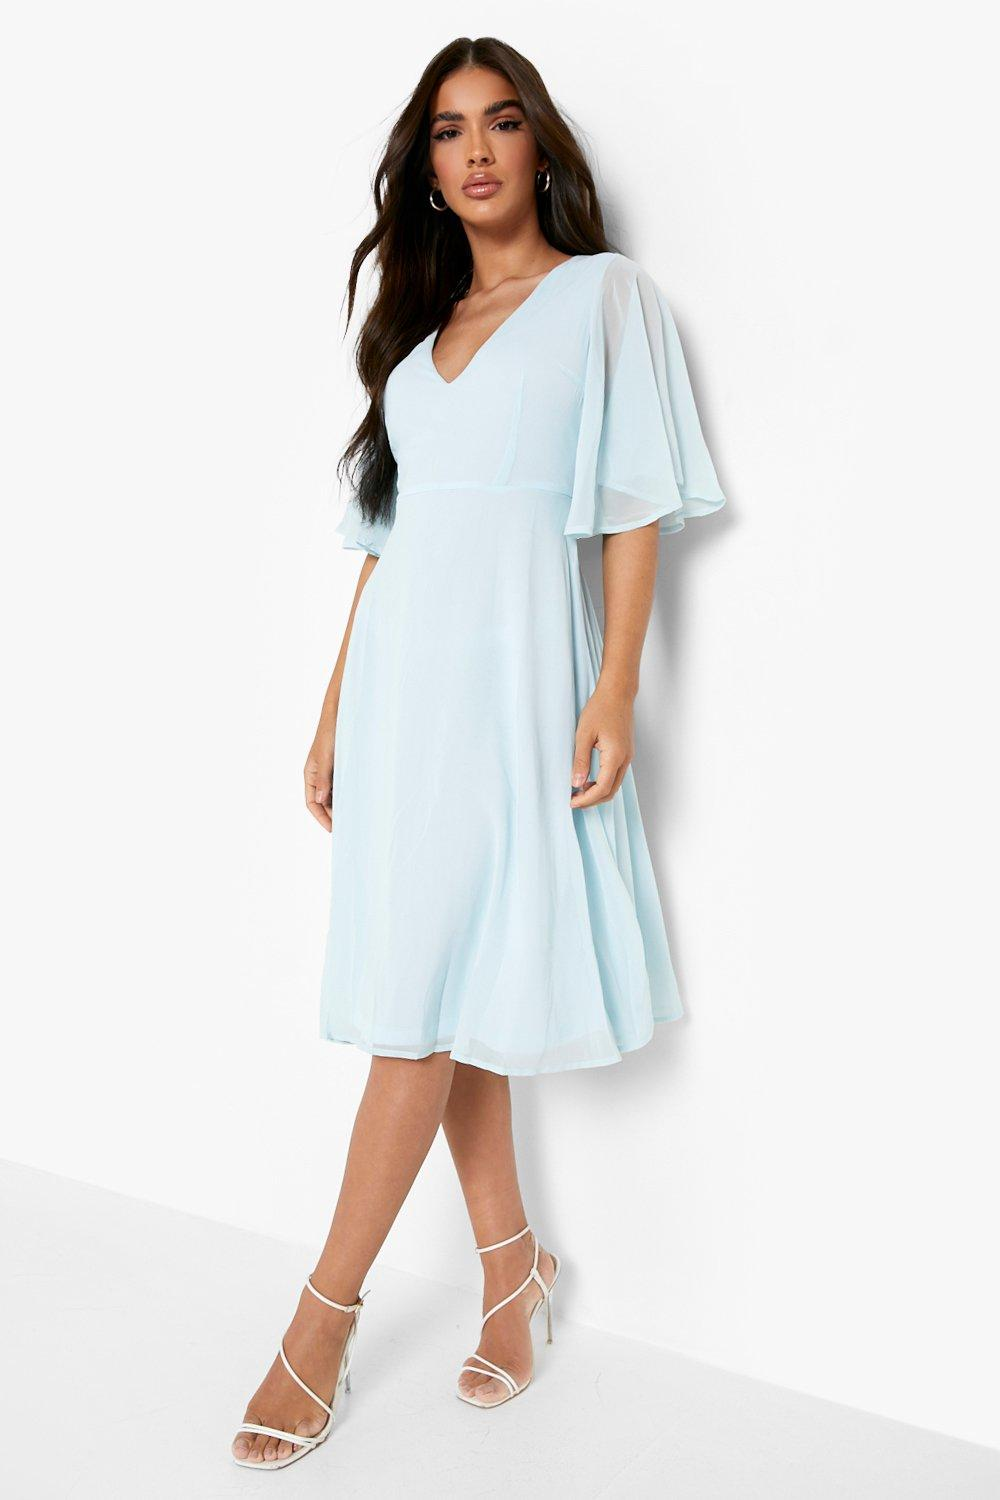 1930s Dresses | 30s Art Deco Dress Womens Chiffon Angel Sleeve Midi Skater Bridesmaid Dress - Blue - 12 $19.20 AT vintagedancer.com